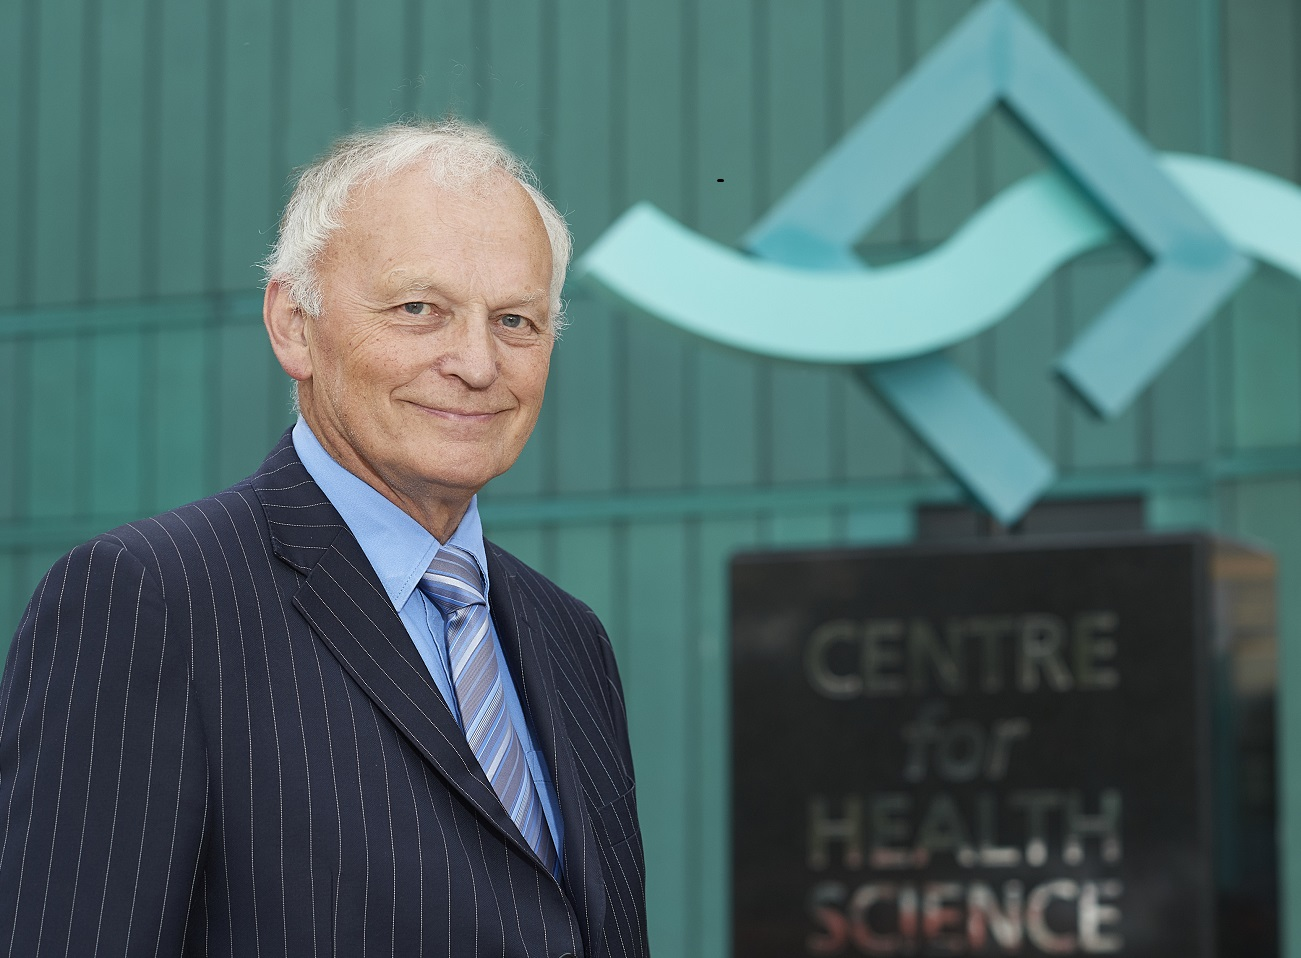 Committed healthcare innovator receives honorary fellowship from the University of the Highlands and Islands